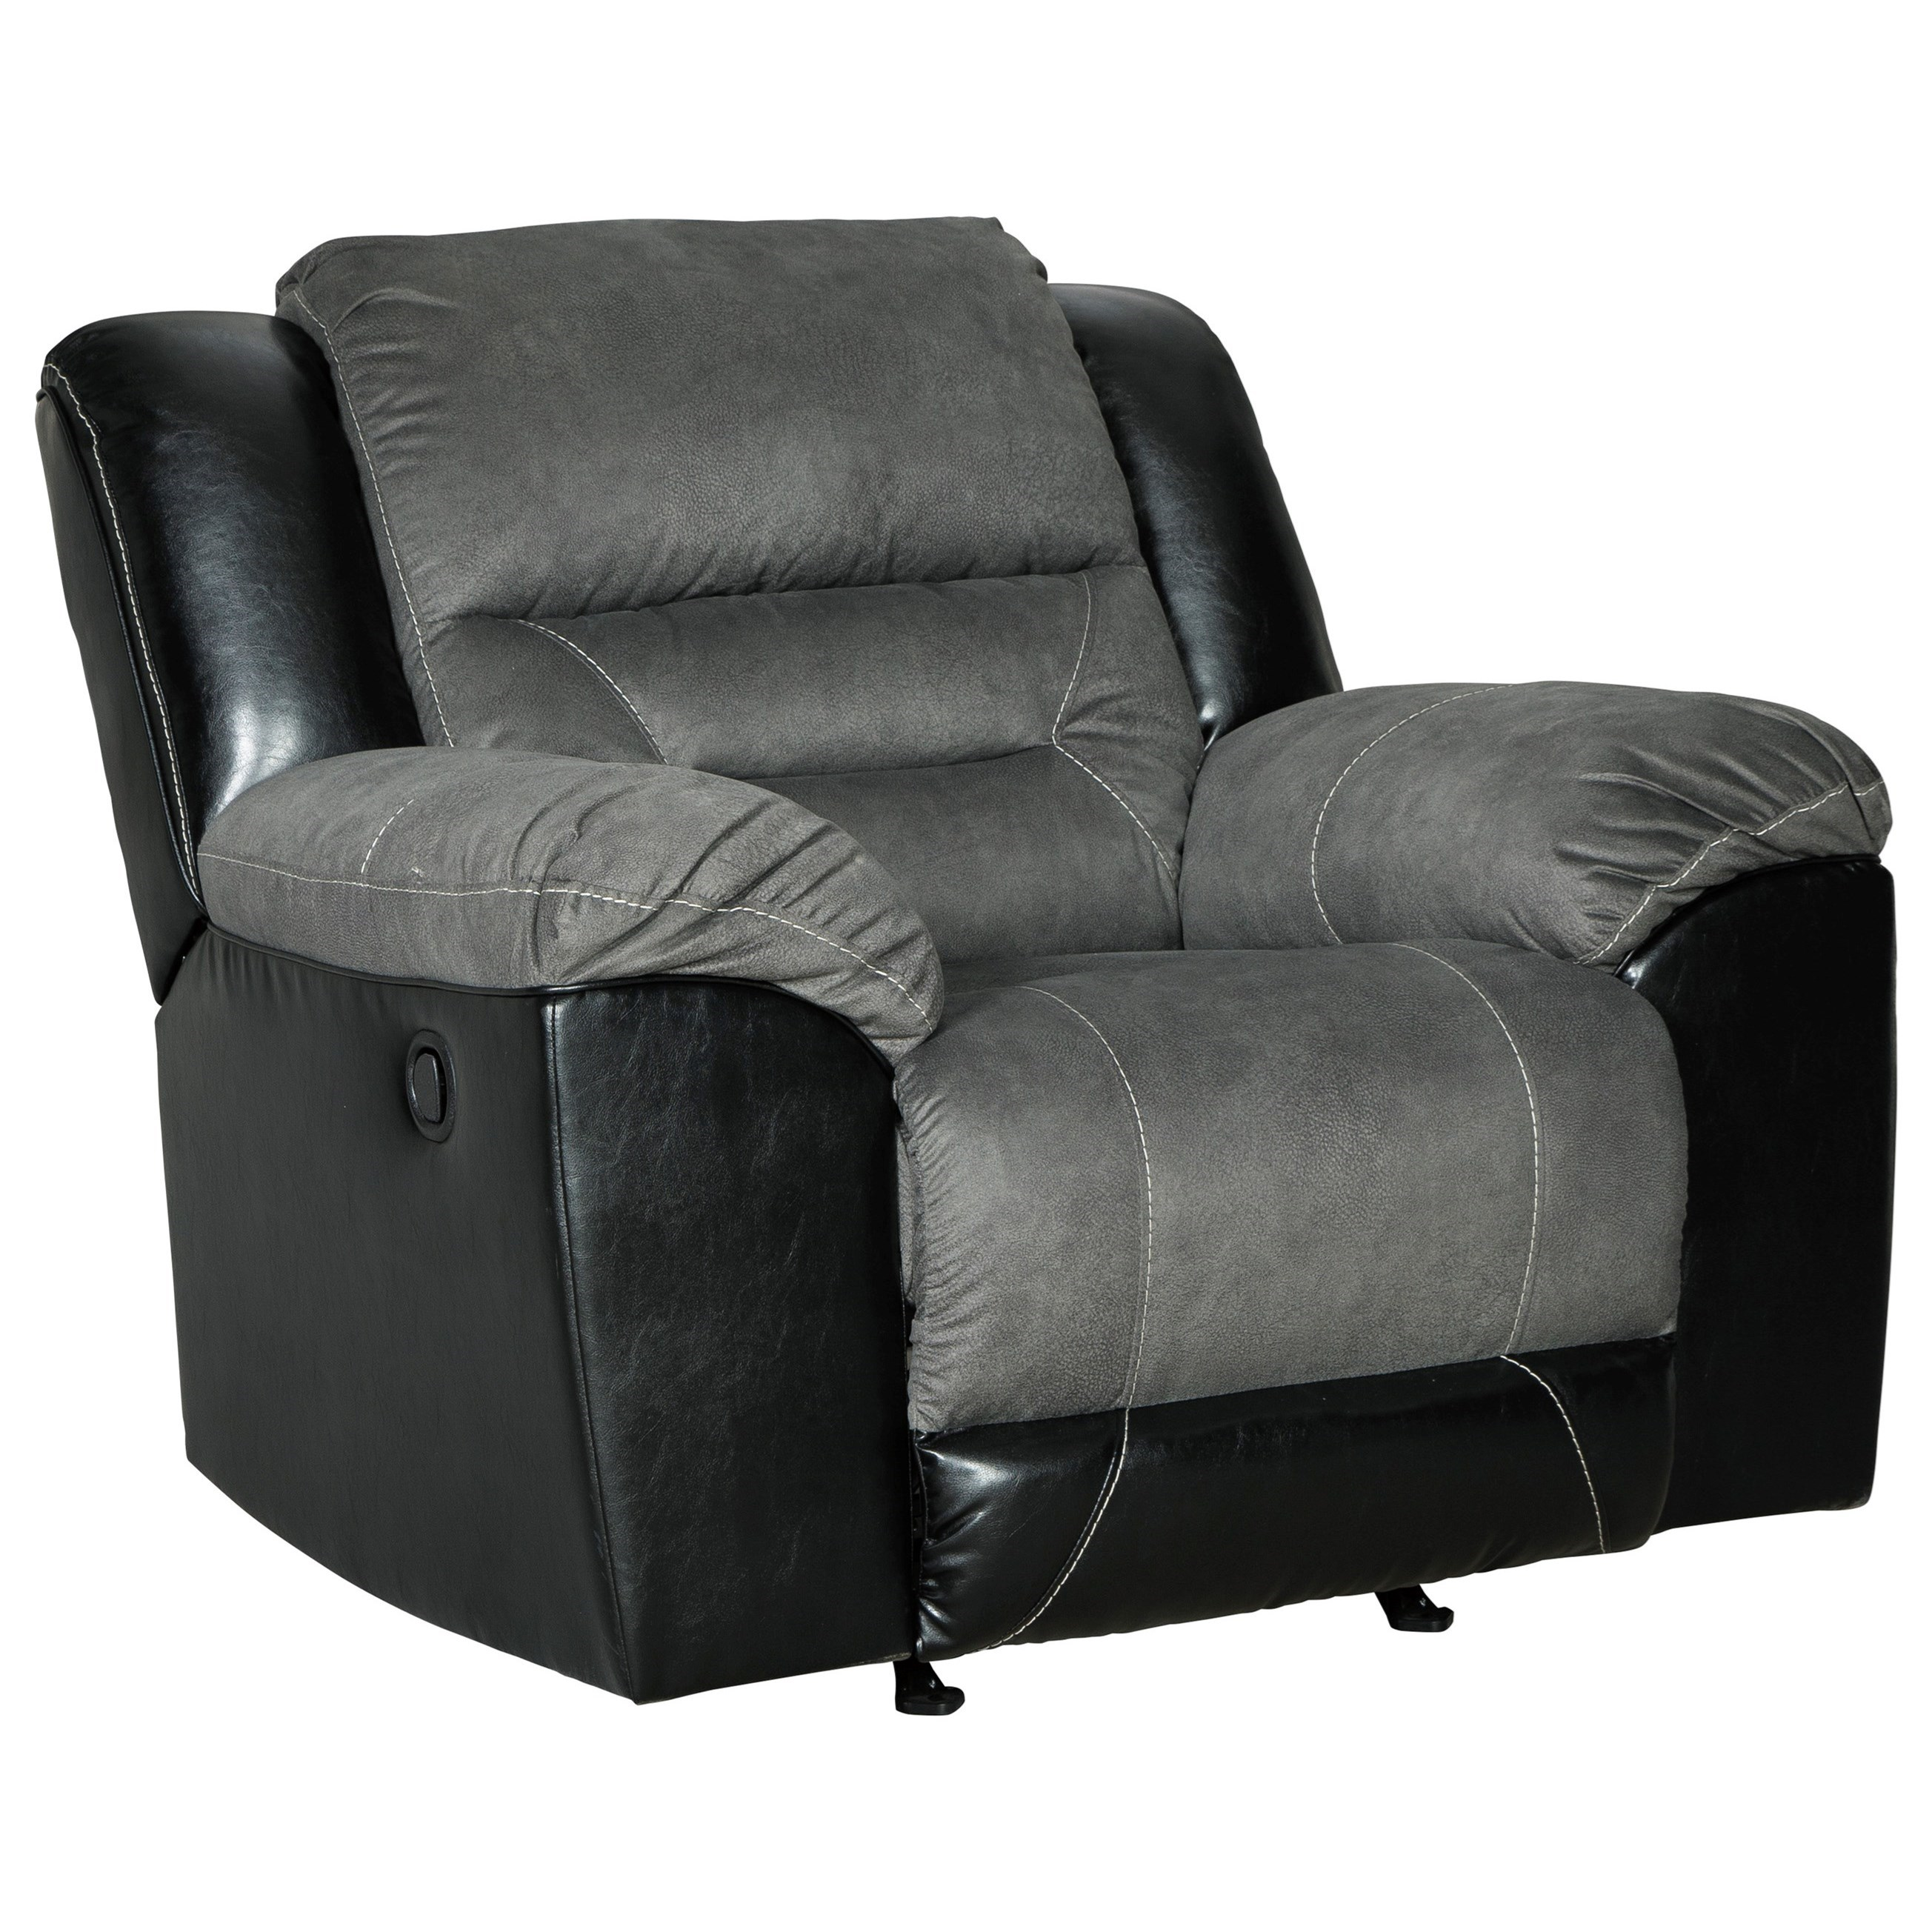 Earhart Rocker Recliner by Signature Design by Ashley at Lindy's Furniture Company